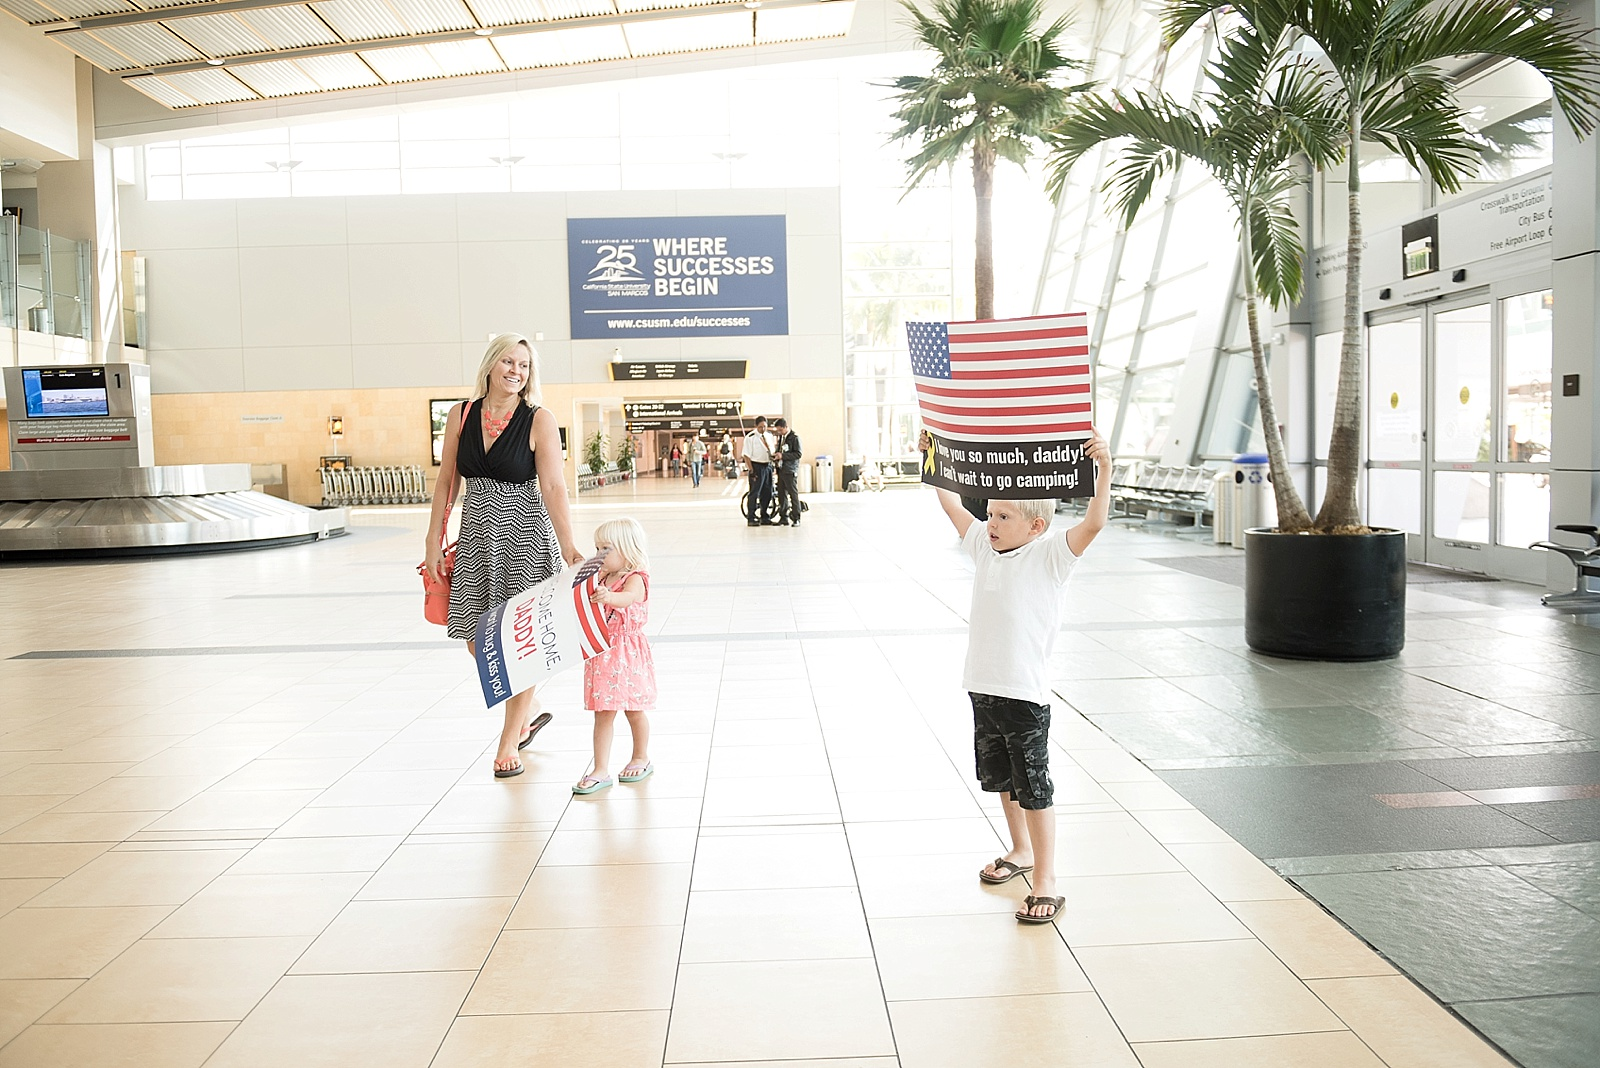 Military deployment Homecoming photography at the San Diego Airport by Lauren Nygard